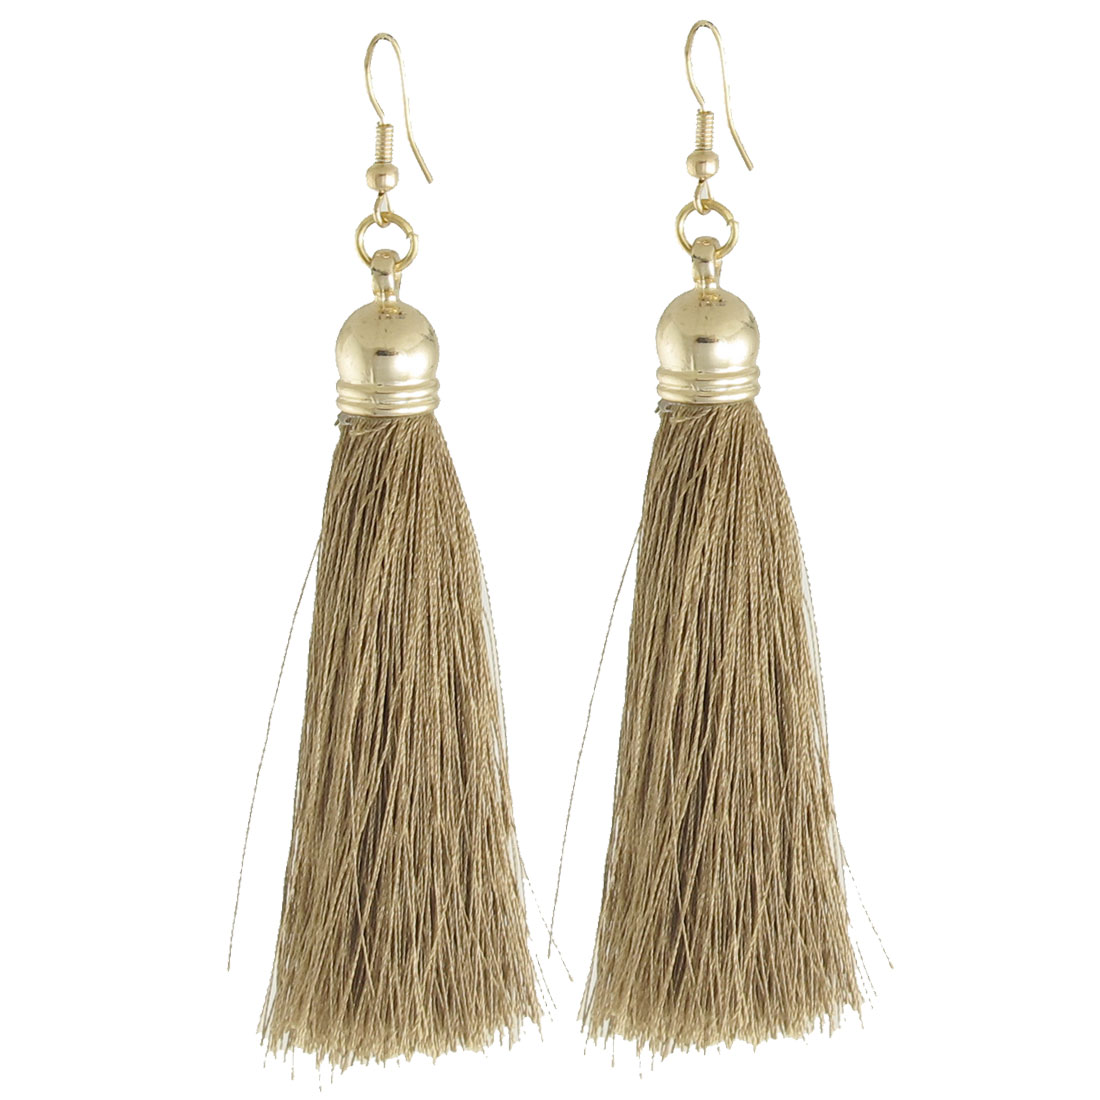 Woman Decoration Nylon Tassel Pendant Dangler Hook Earrings Brown Pair